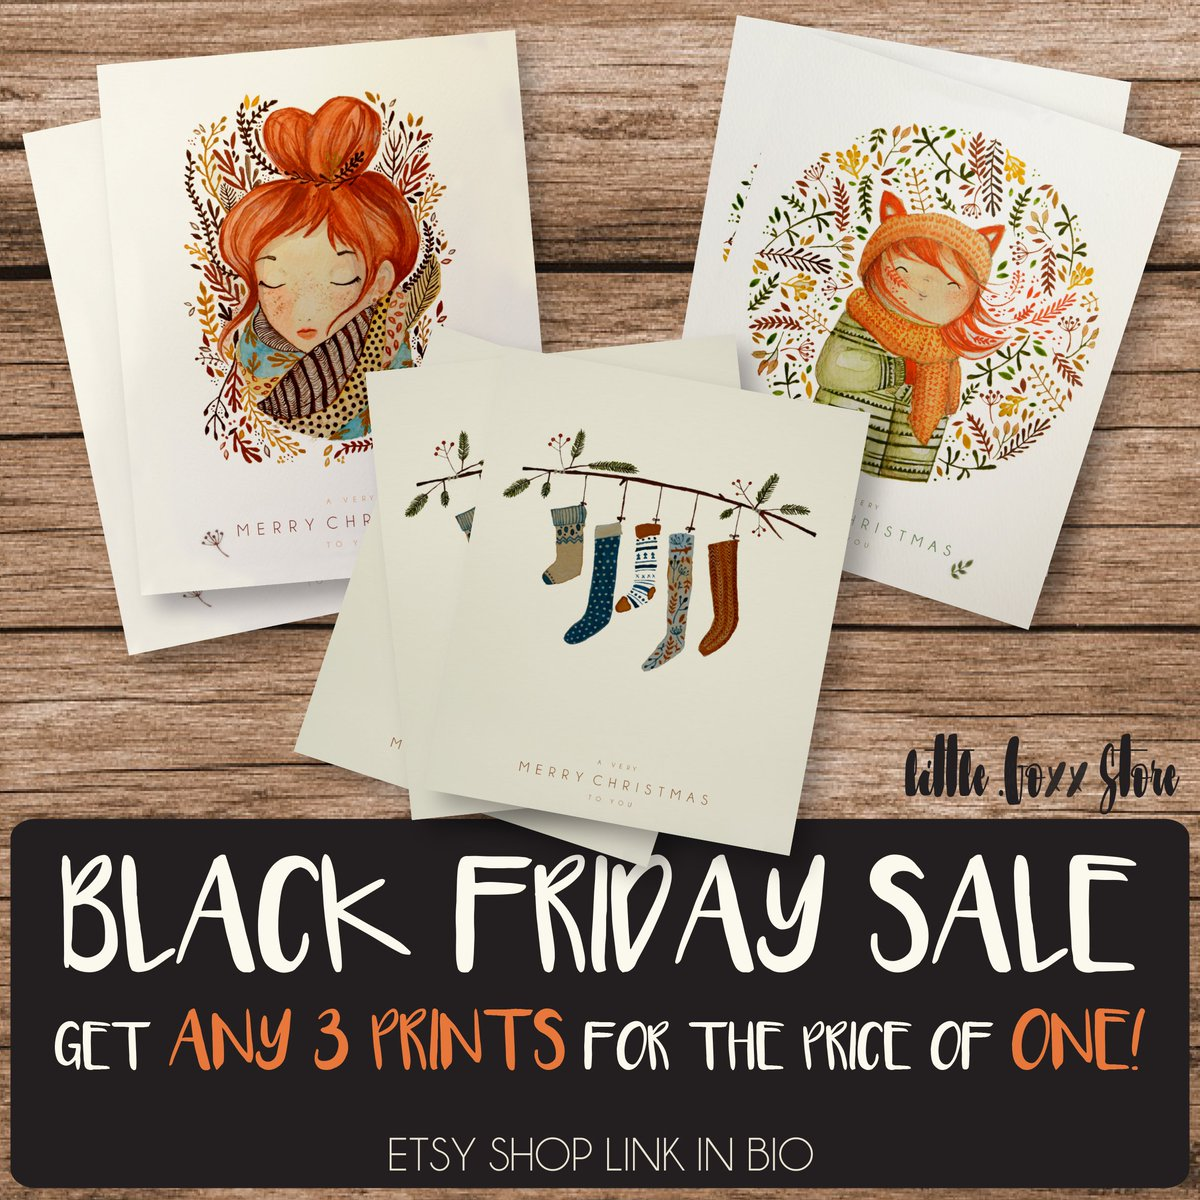 With buying ANY of these cards you get 2 more of your choice for FREE!  #BlackFriday #blackfridaysale #sale #christmas #christmassale #christmascard #art #illustration #watercolor #watercolour #illustration #prints #cards #CardsThanks<br>http://pic.twitter.com/DWiZB5jaUV